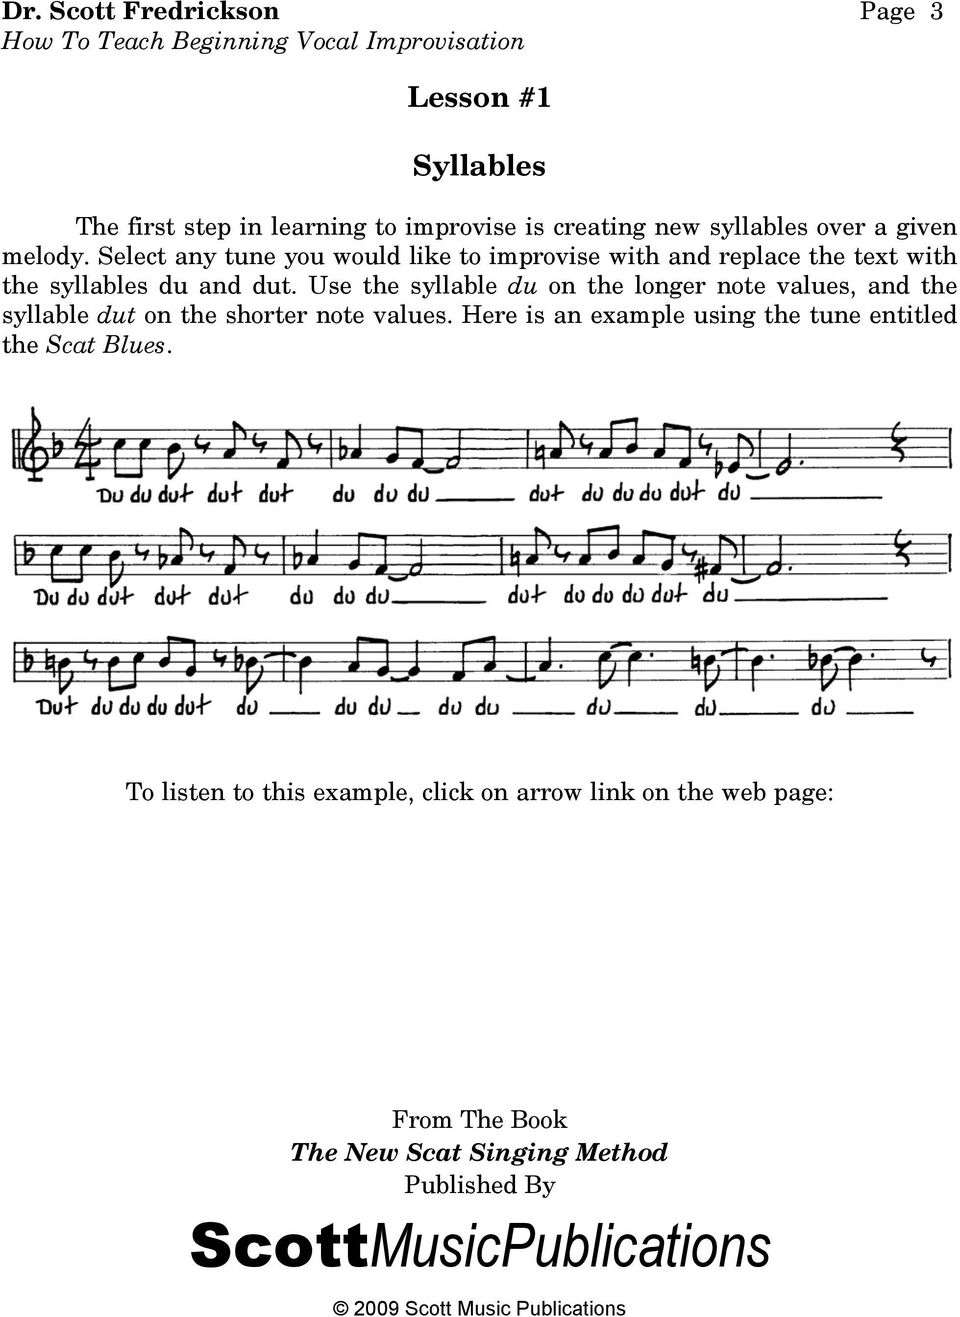 Select any tune you would like to improvise with and replace the text with the syllables du and